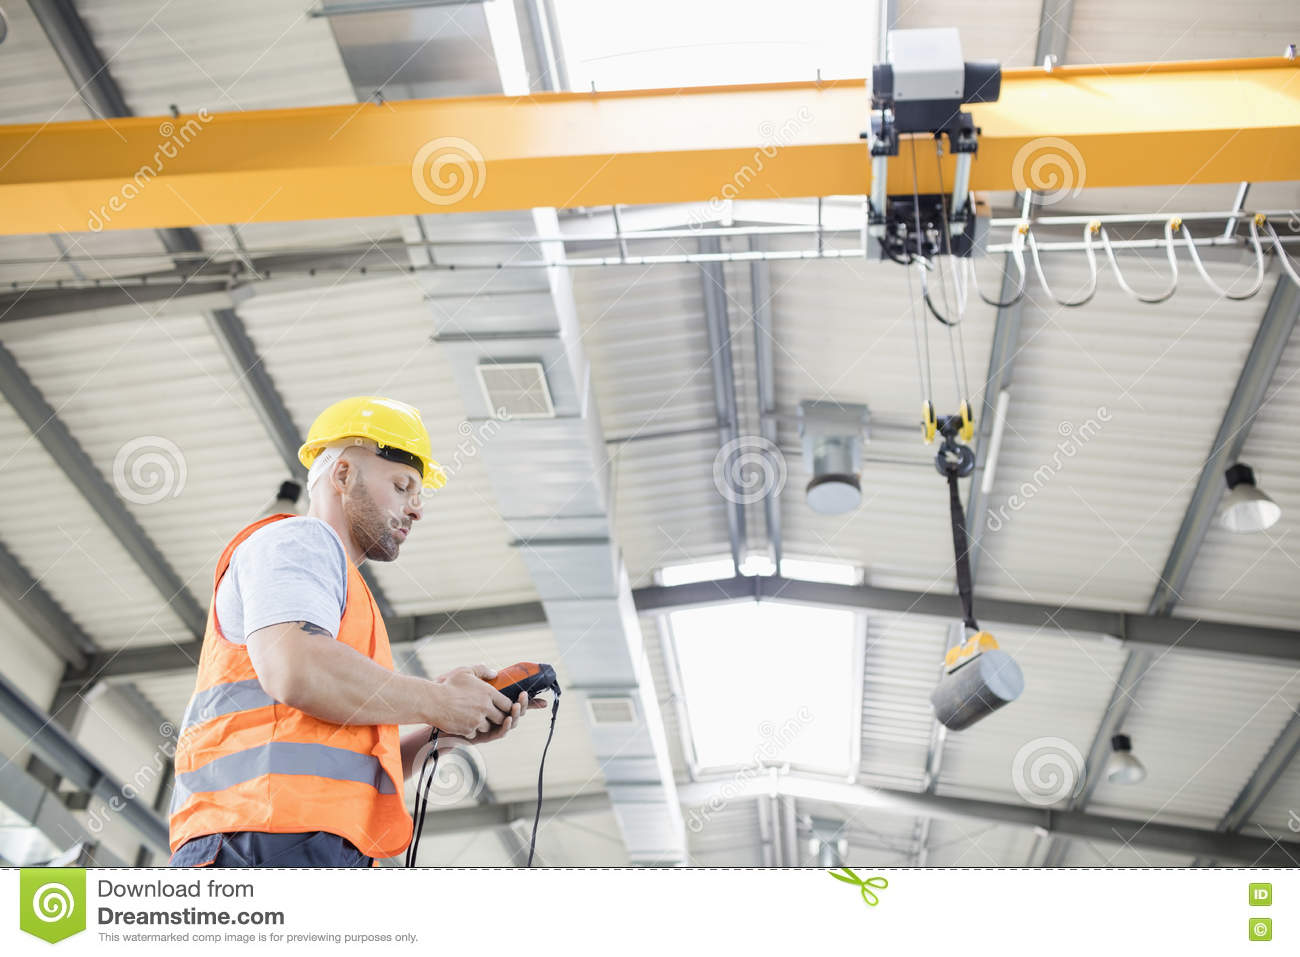 Low angle view of manual worker operating crane lifting steel in industry